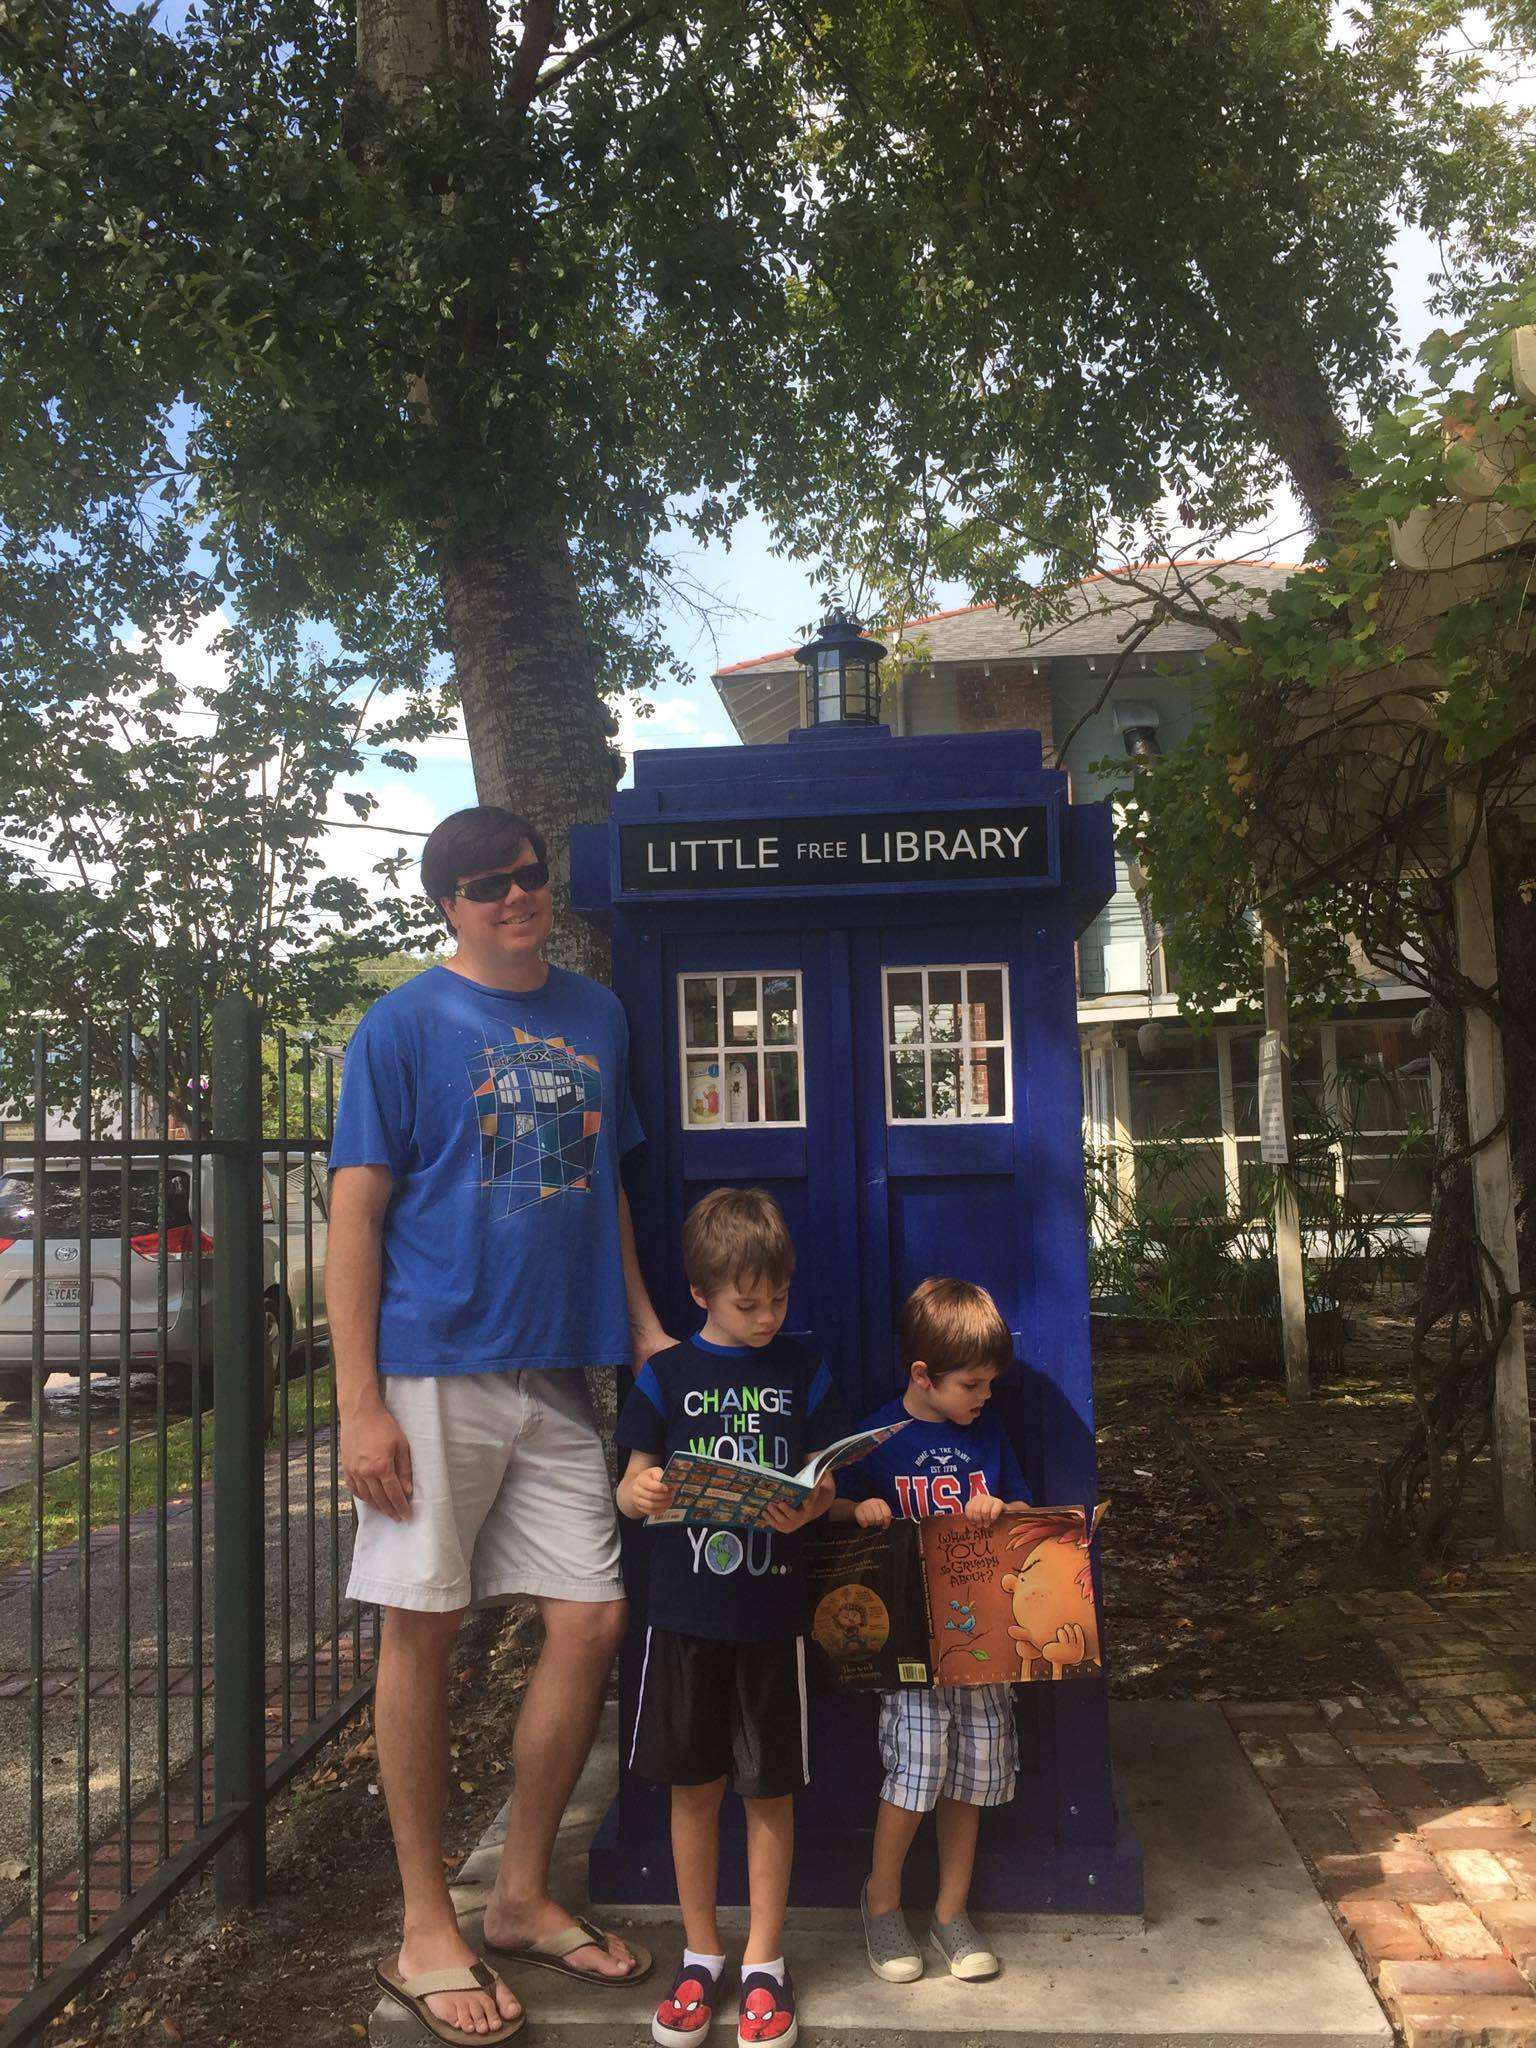 The TARDIS and other Little Free Libraries on the Northshore